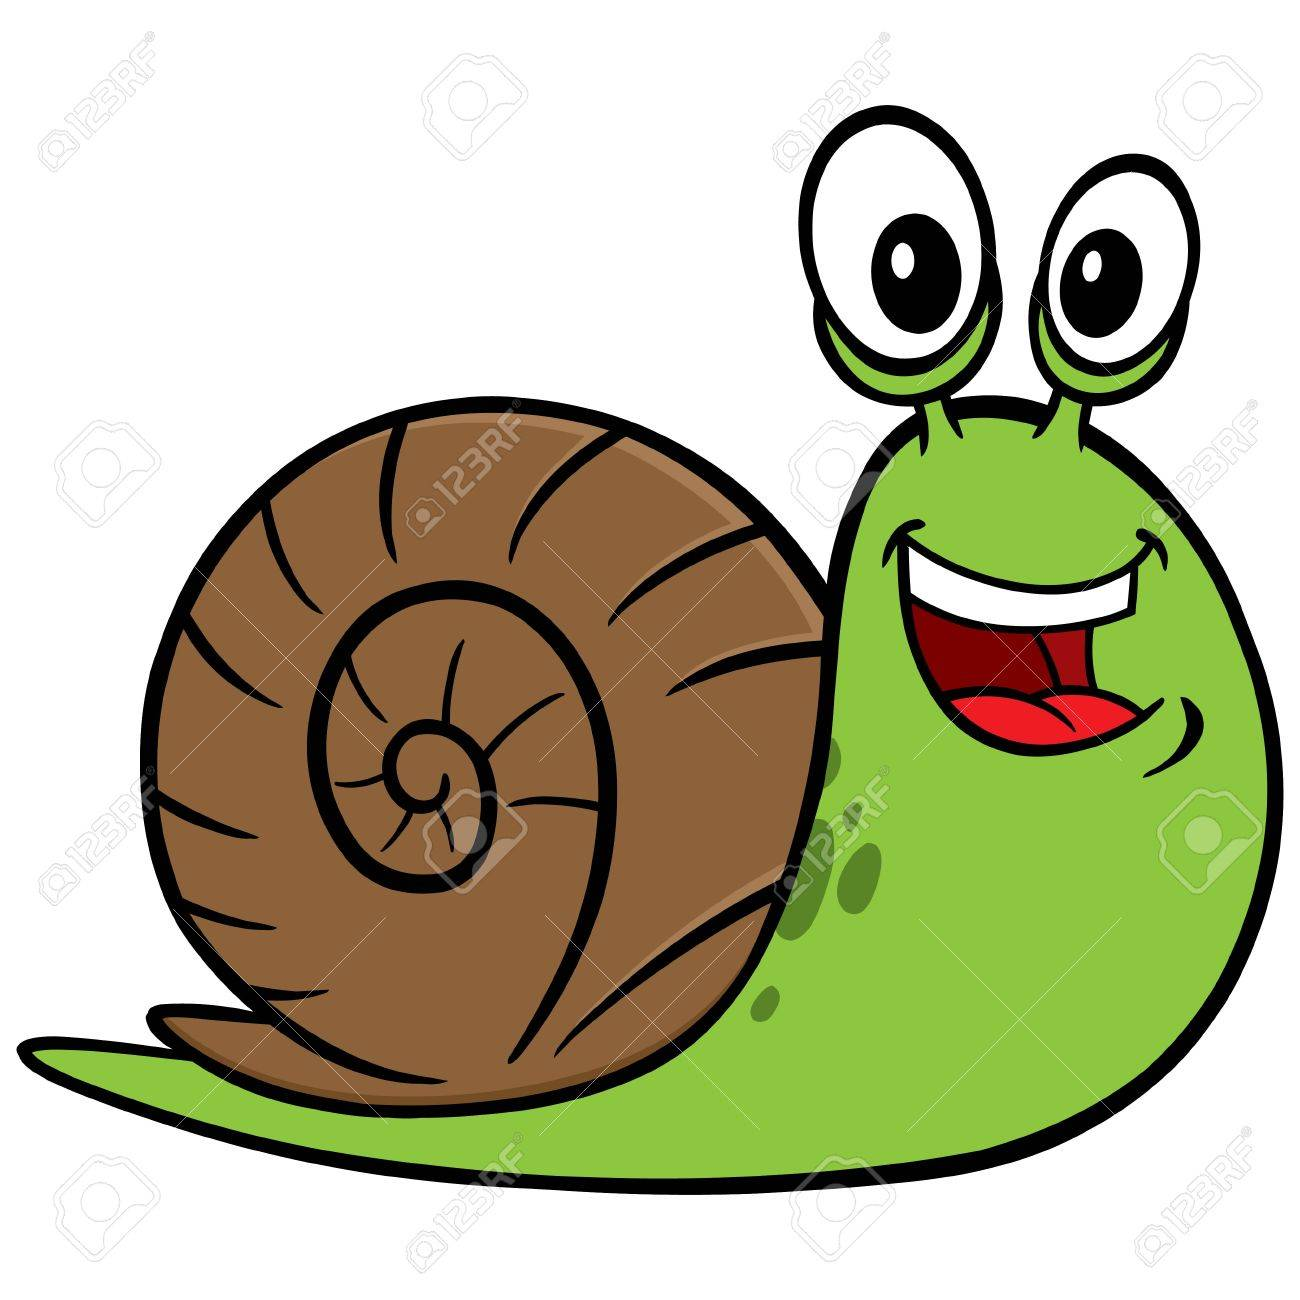 Snail clipart cartoon svg royalty free download Collection of 14 free Snail clipart garden snail aztec ... svg royalty free download